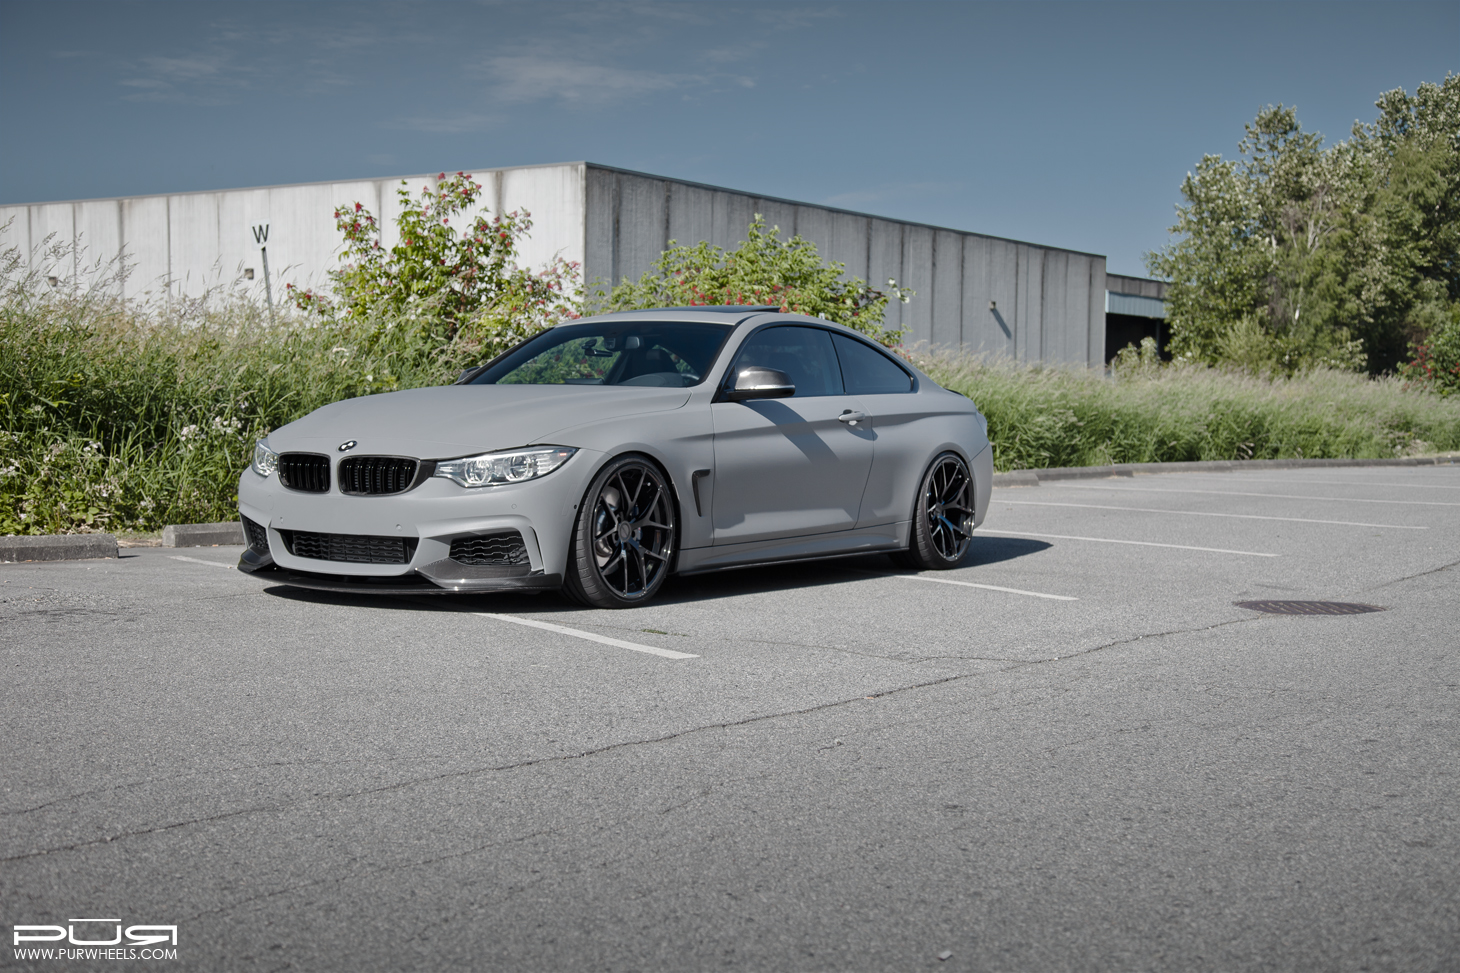 MPPSOCIETY BMW 435xi PUR Wheels 05